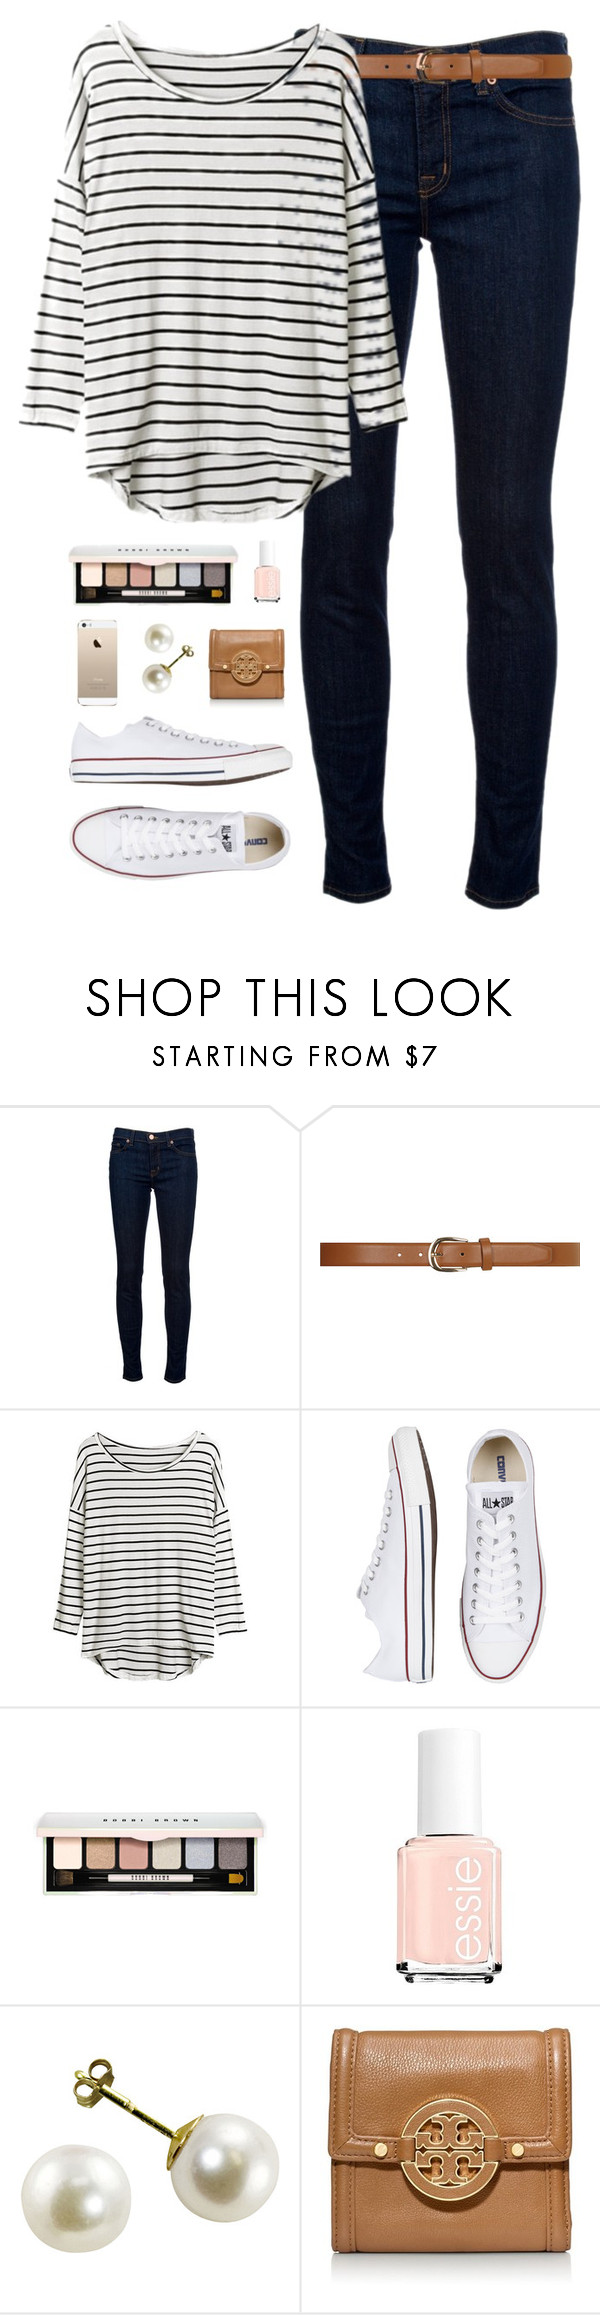 """""""ootd"""" by classically-preppy ❤ liked on Polyvore featuring J Brand, Dorothy Perkins, Converse, Bobbi Brown Cosmetics, Essie and Tory Burch"""